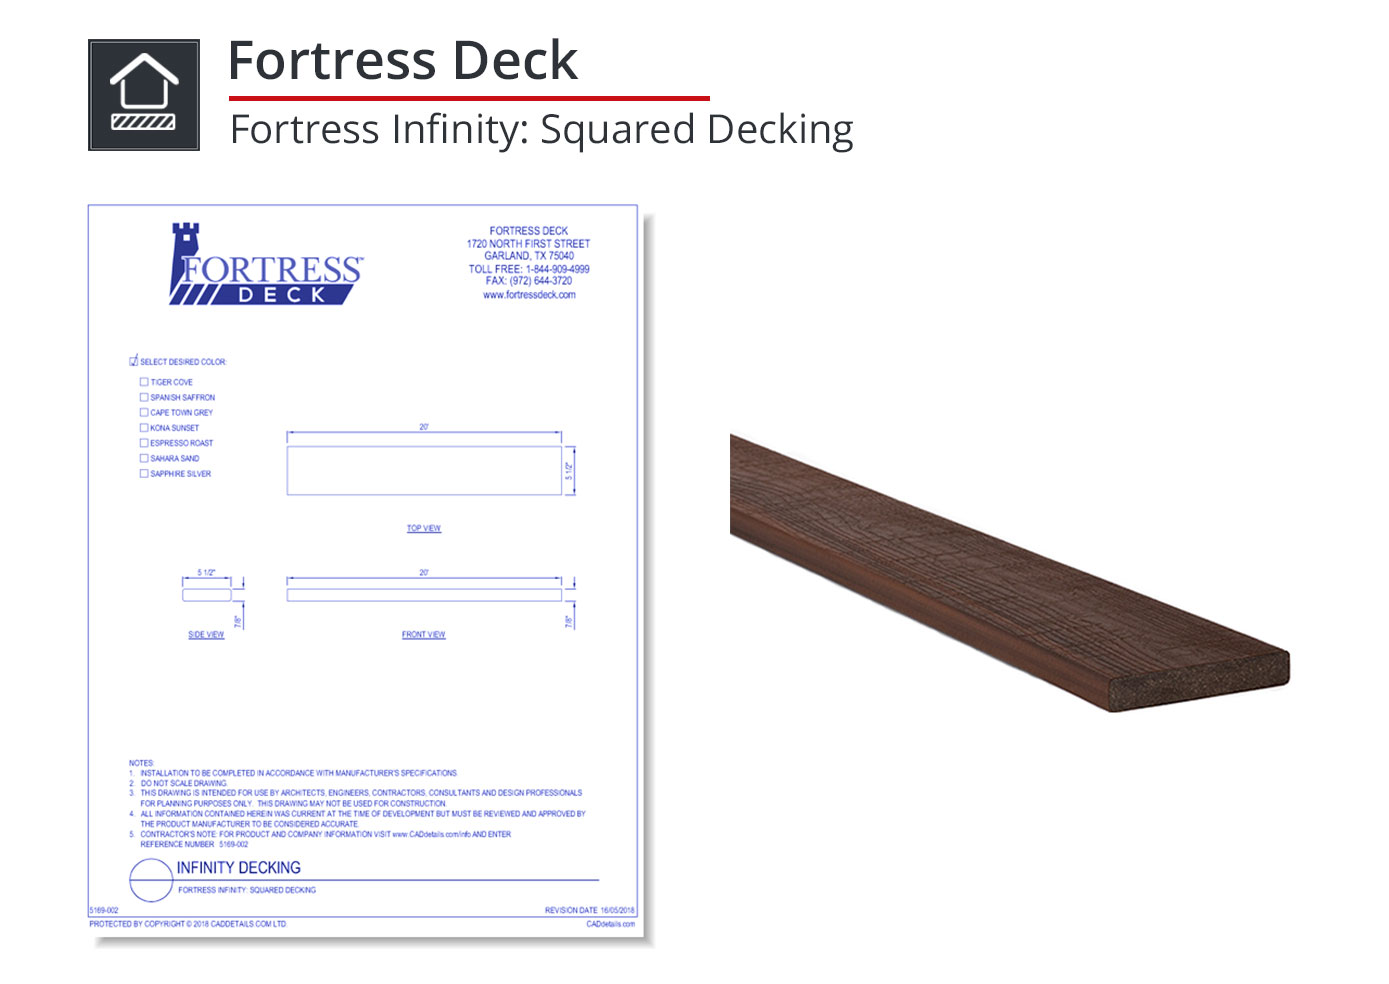 5169-002 Fortress Infinity: Squared Decking